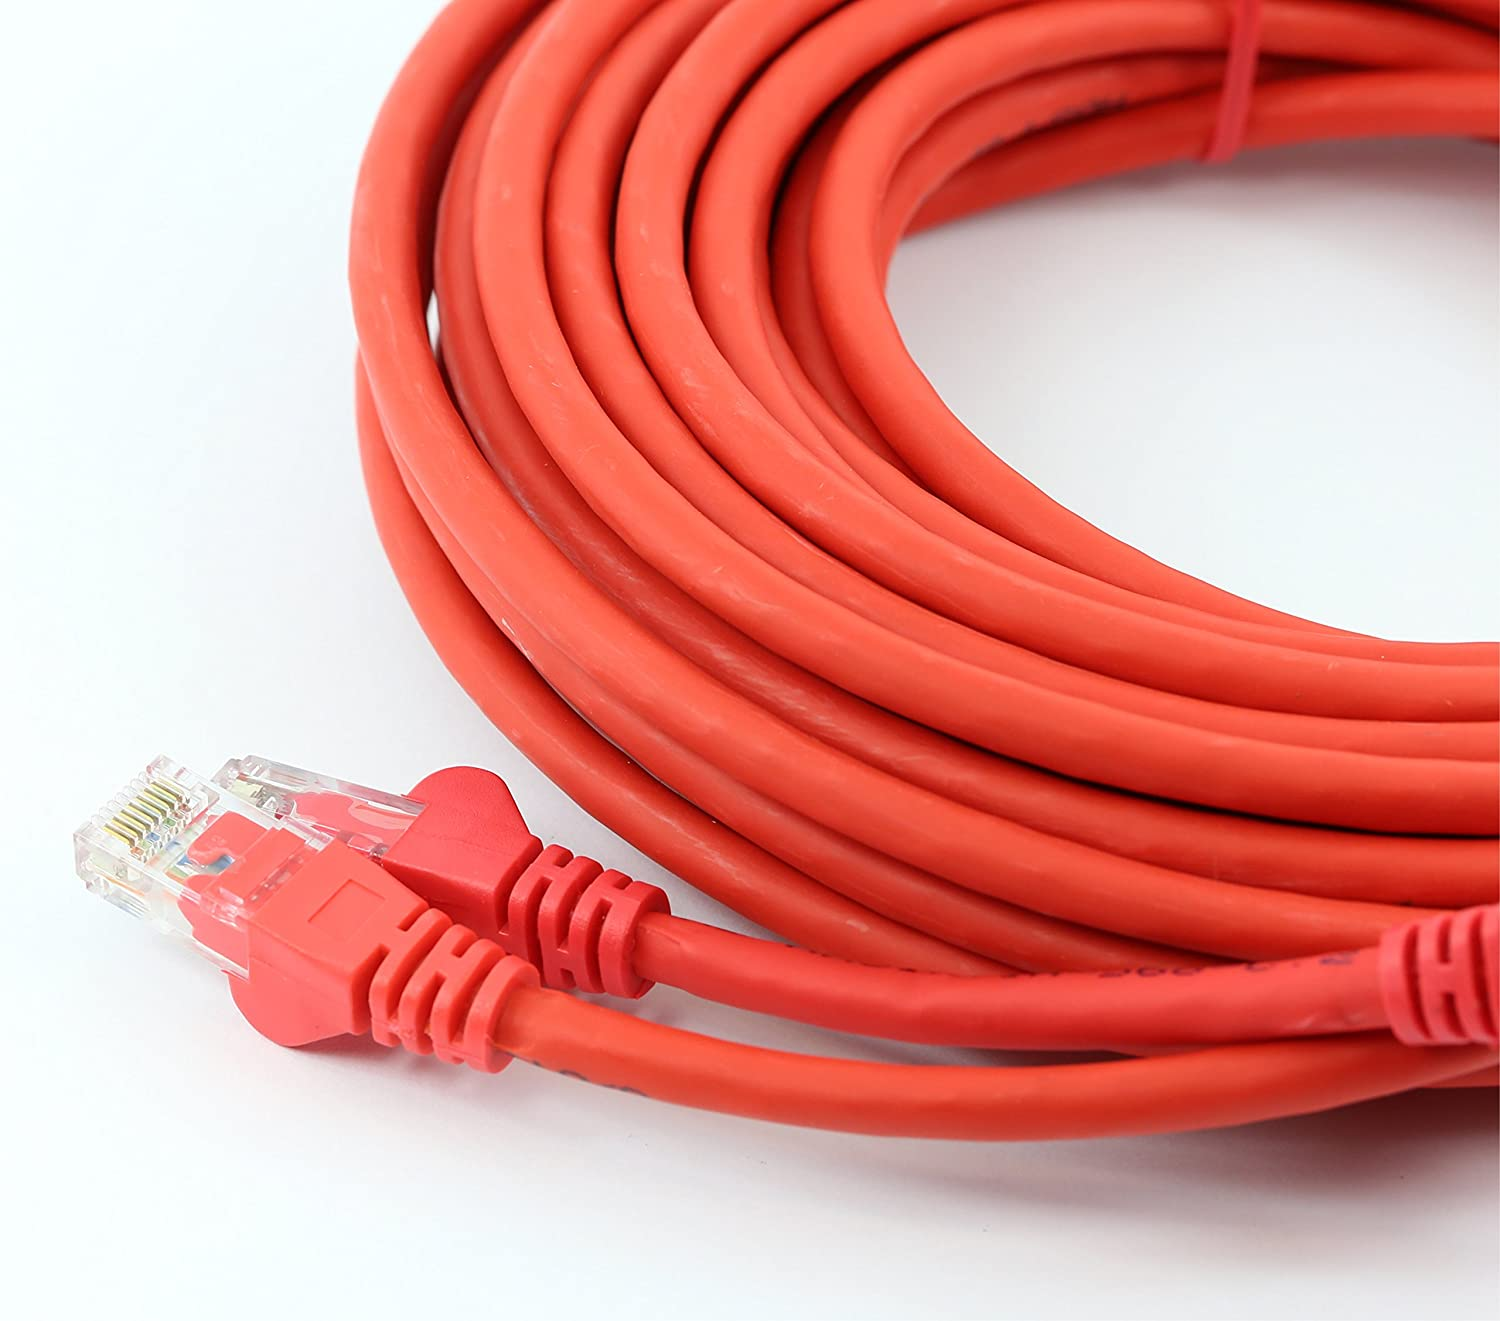 rhinocables Cat 5e Cat5e Ethernet RJ45 High Speed Network Cable Internet Fast Speed Lead 6ft 7in, Red